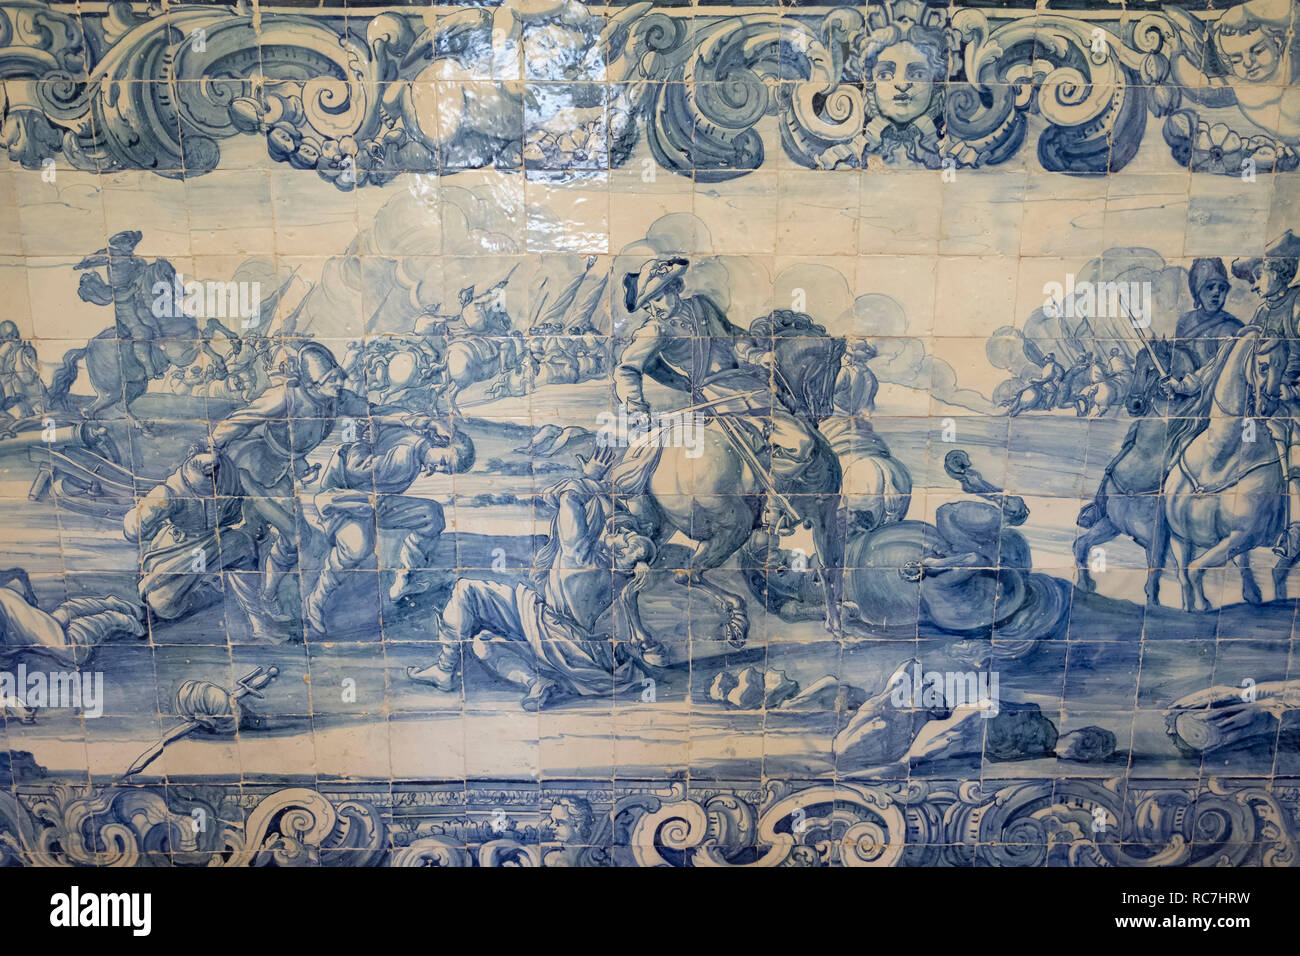 Traditional portuguese azulejos painted tiles depicting a battle scene at the Marques de Pombal Palace in Oeiras, Portugal, Europe - Stock Image